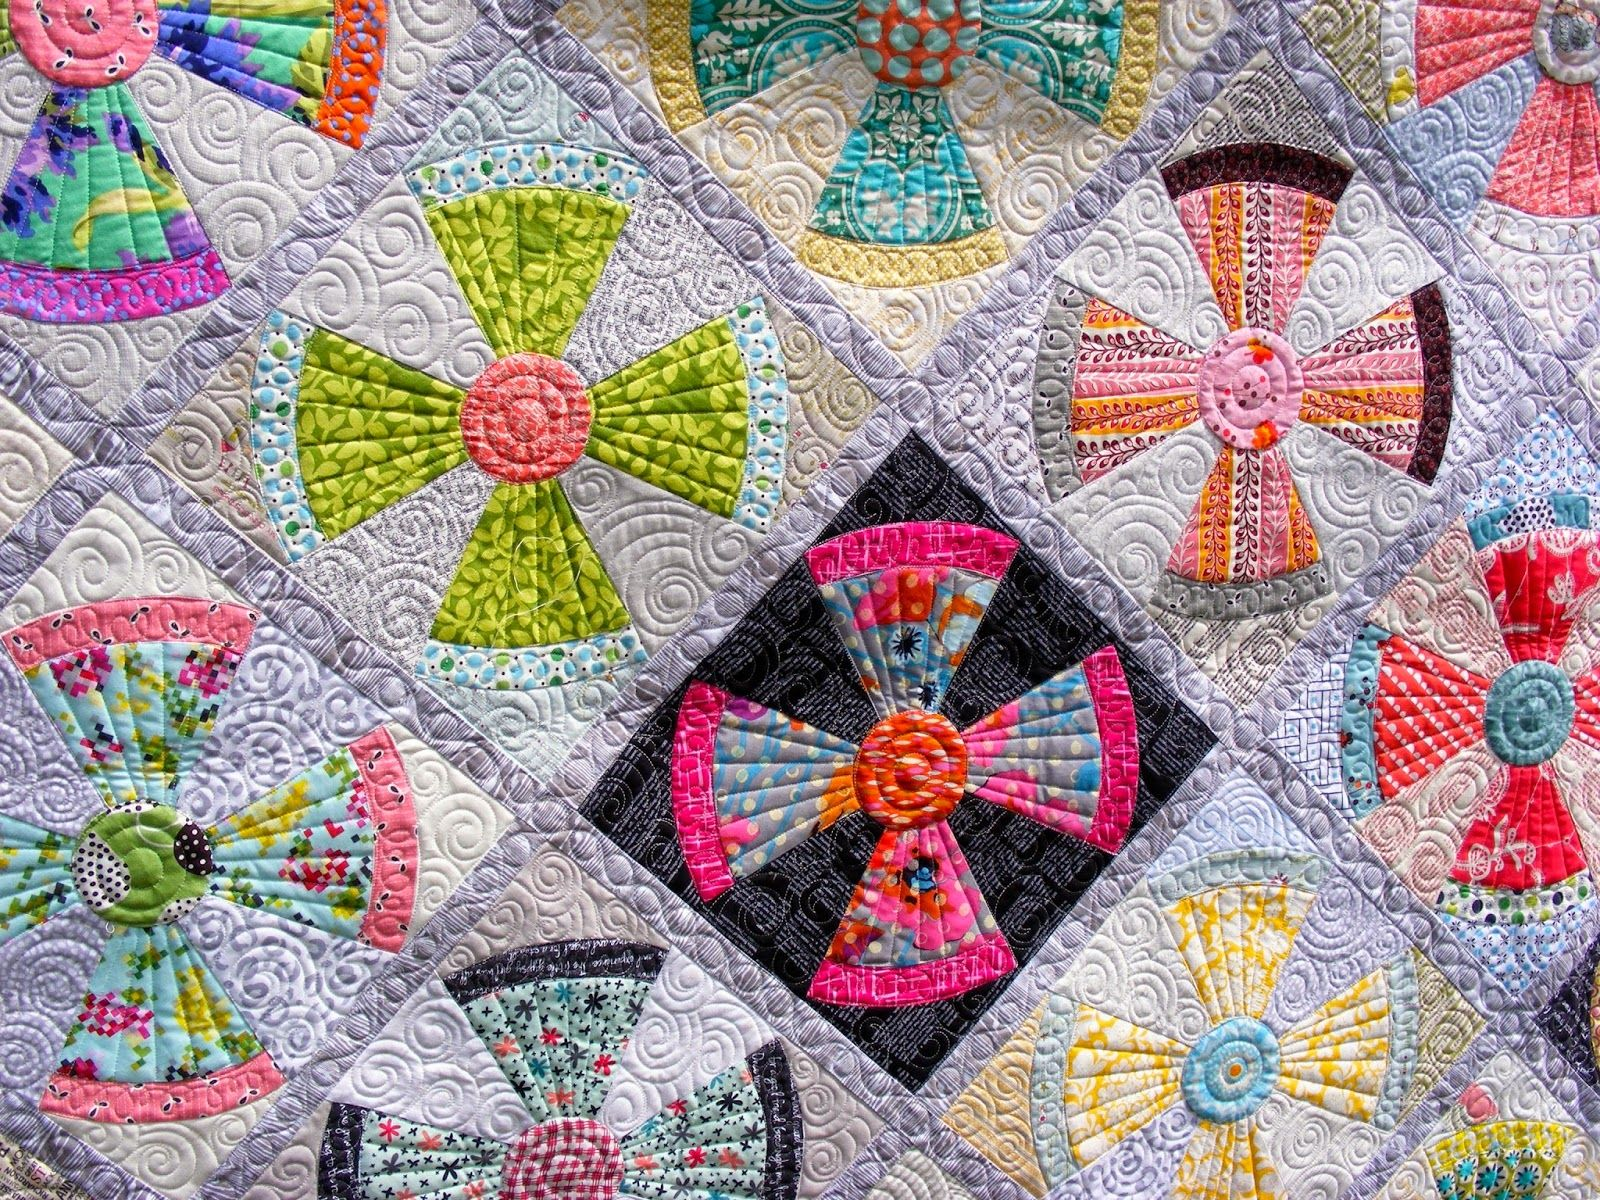 THIS IS THE OFFICIAL STEAM PUNK PATTERN PC | Quilts...Jen Kingwell ... : steampunk quilt pattern - Adamdwight.com